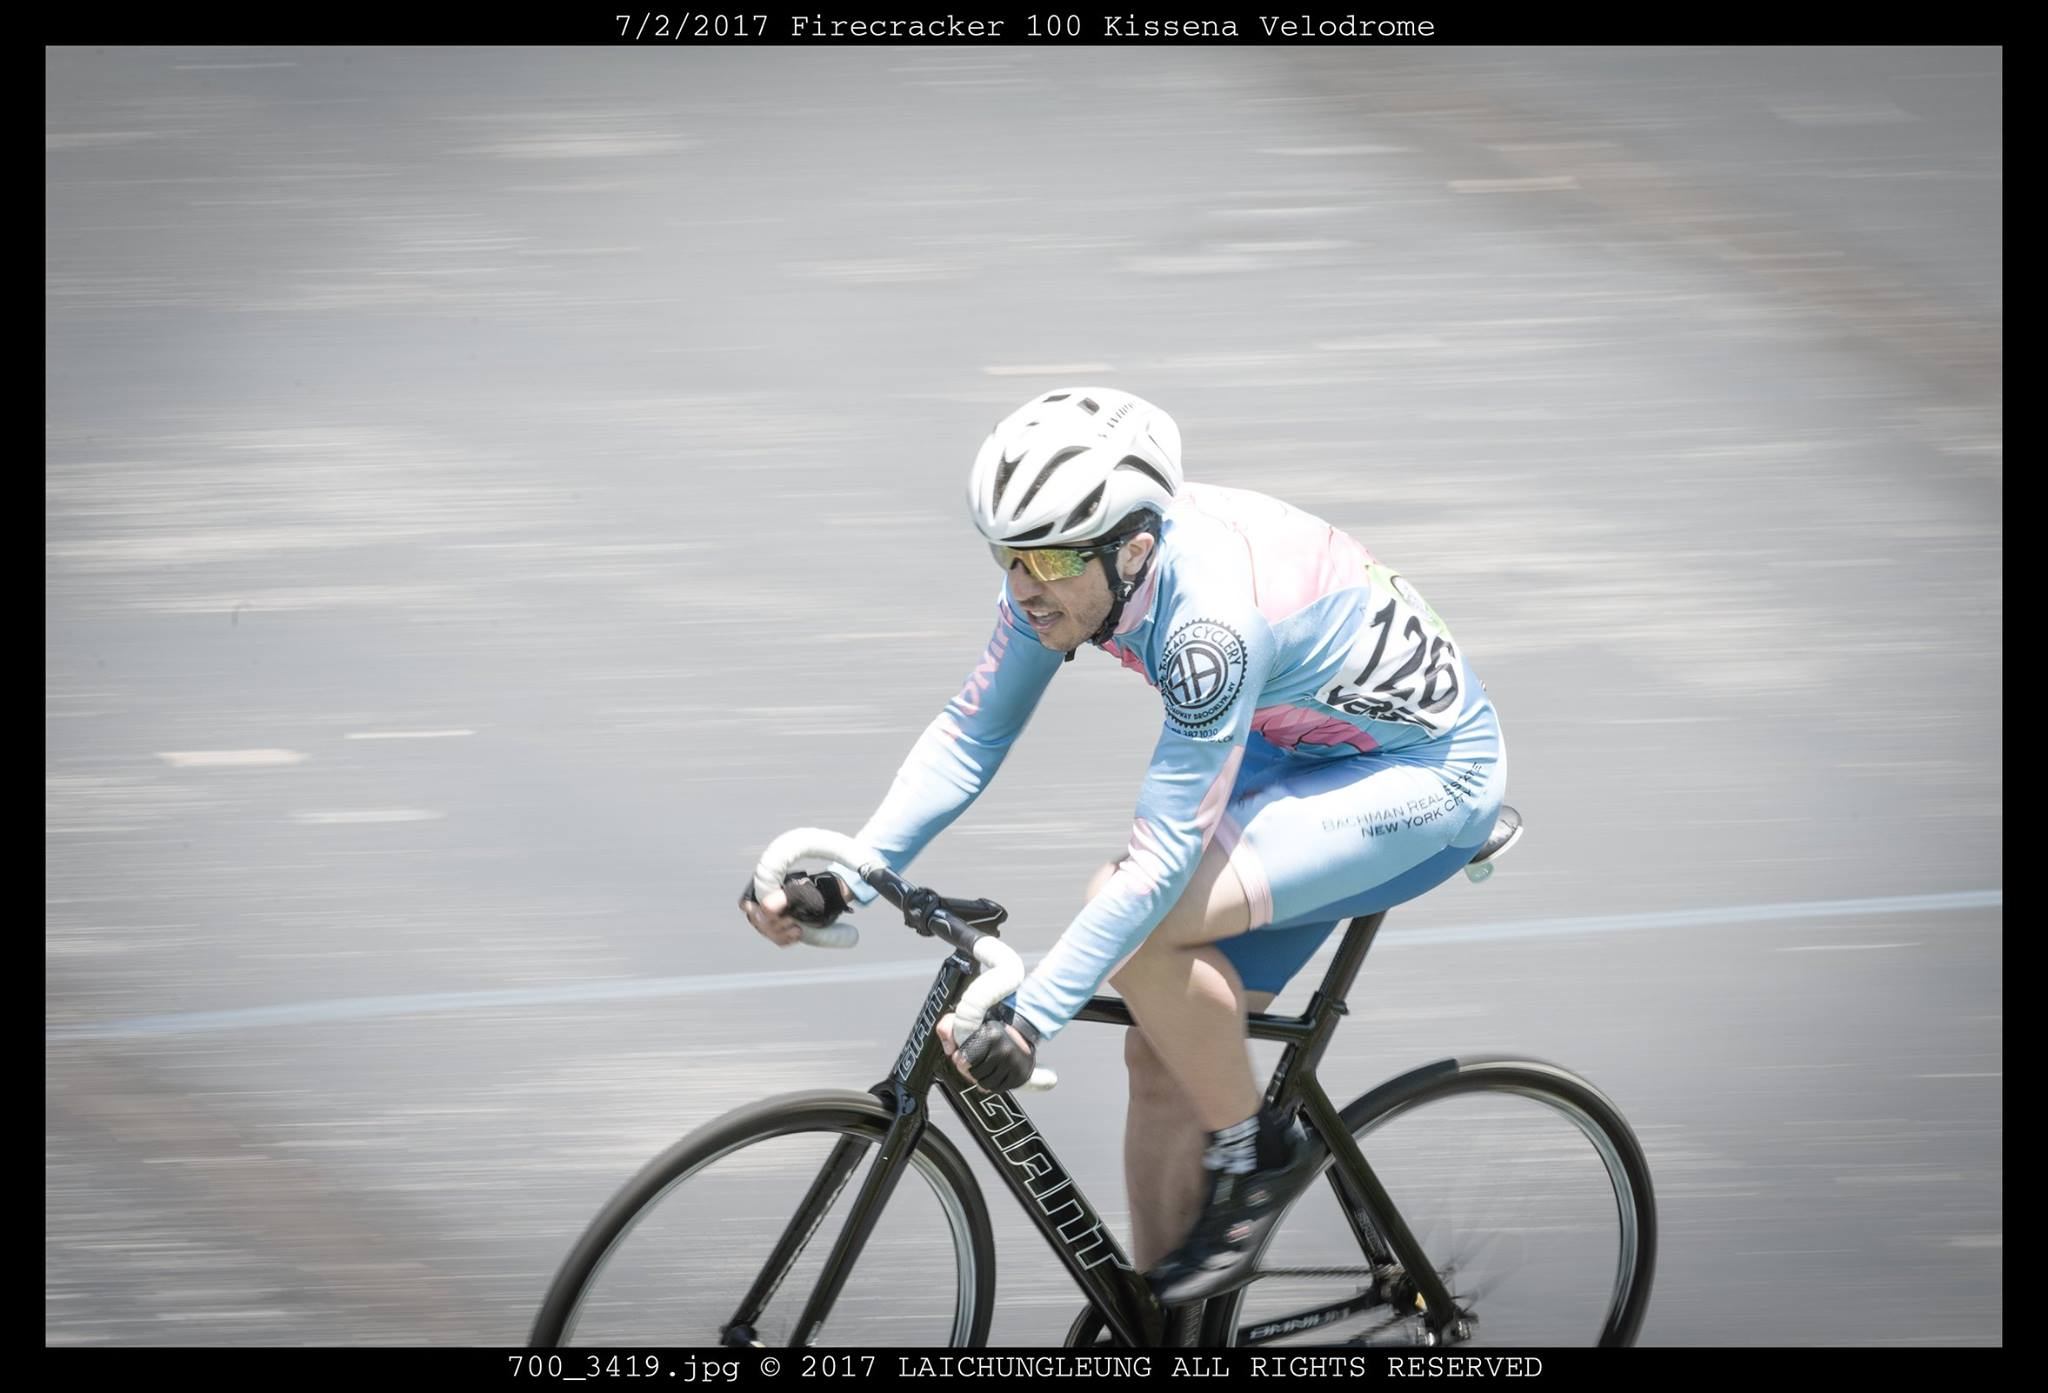 TIM CLARK - HOMETOWN: NORTHAMPTON, UKCURRENT CITY: WHITE PLAINSUSAC CAT: TRACK - FOUR; ROAD - THREEYEARS RACING: TENACHIEVEMENTS: 2016 LABOR DAY CATEGORY WINNER; 2017 NEW YORK STATE SILVER MEDALLIST POINTS RACEWHO WOULD PLAY YOU IN A MOVIE: HUGH GRANTFUN FACT:FINAL WORDS: WILL WORK ON THAT TODAY